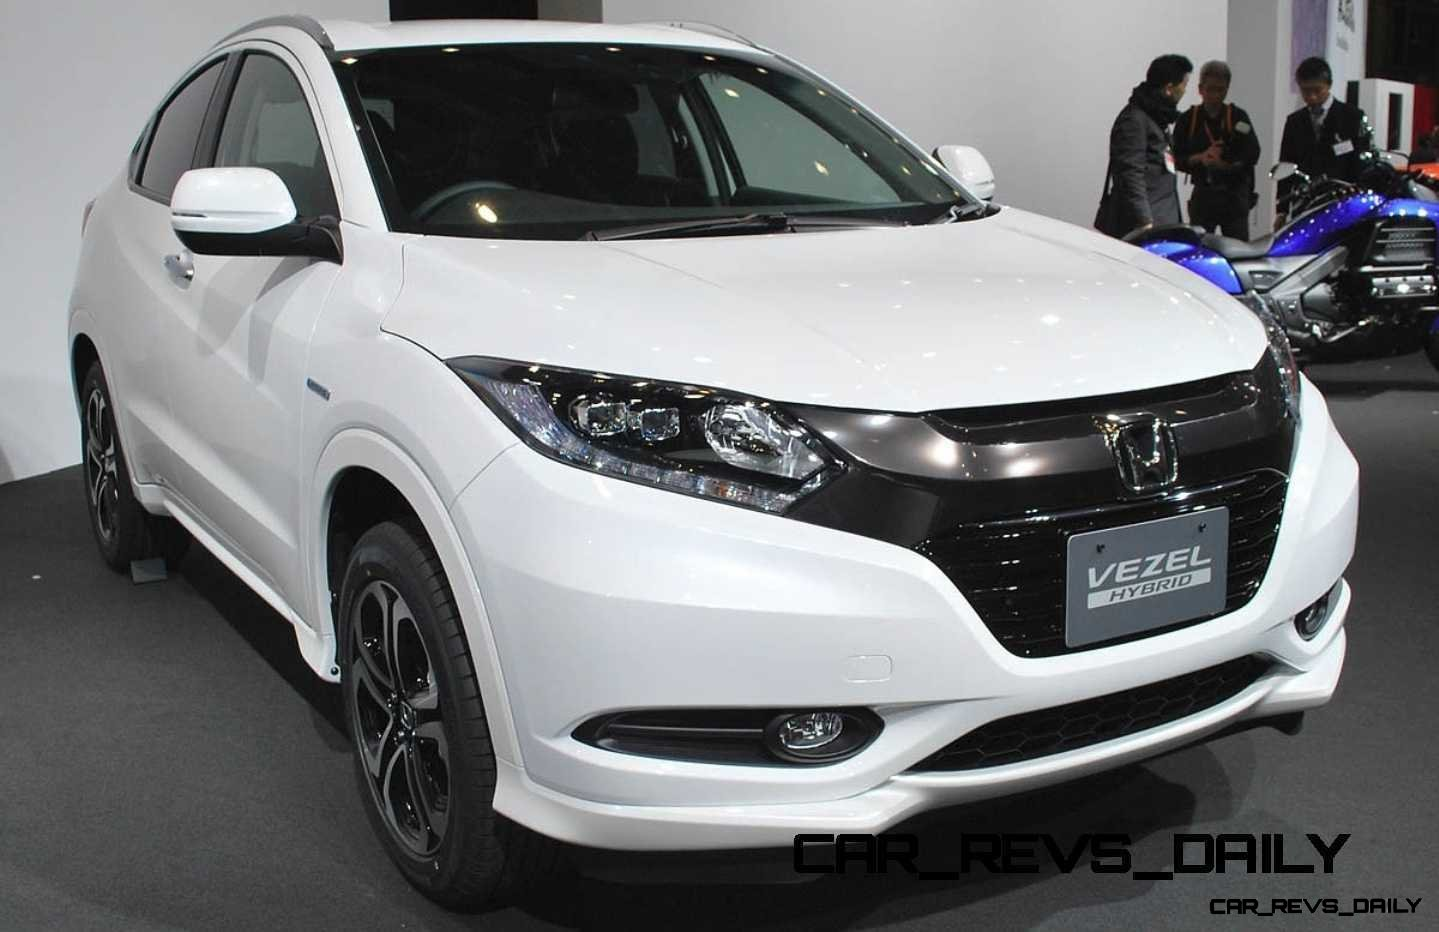 Cool Honda Vezel Hybrid Previews Possible 2015 Civic Cuv